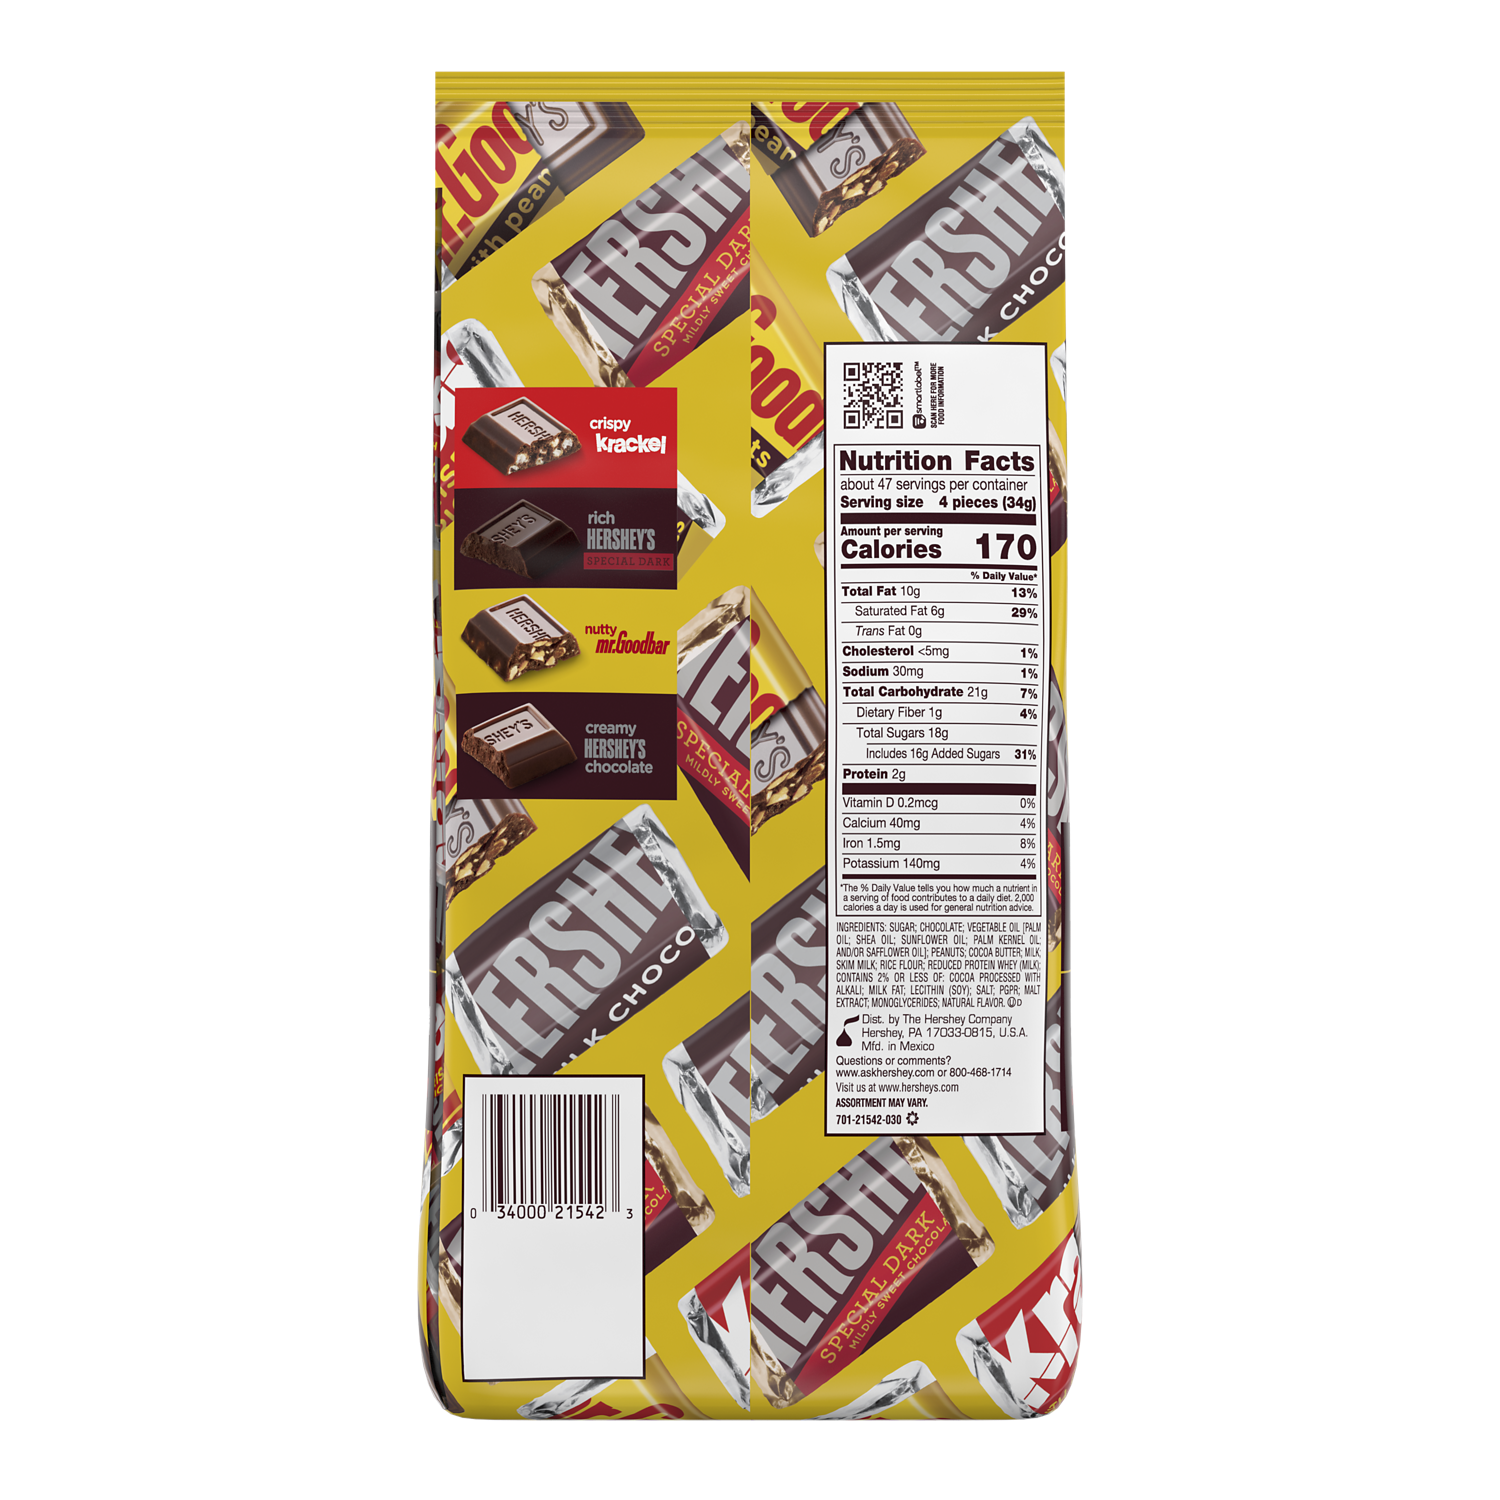 HERSHEY'S Miniatures Assortment, 56 oz bag, 180 pieces - Back of Package